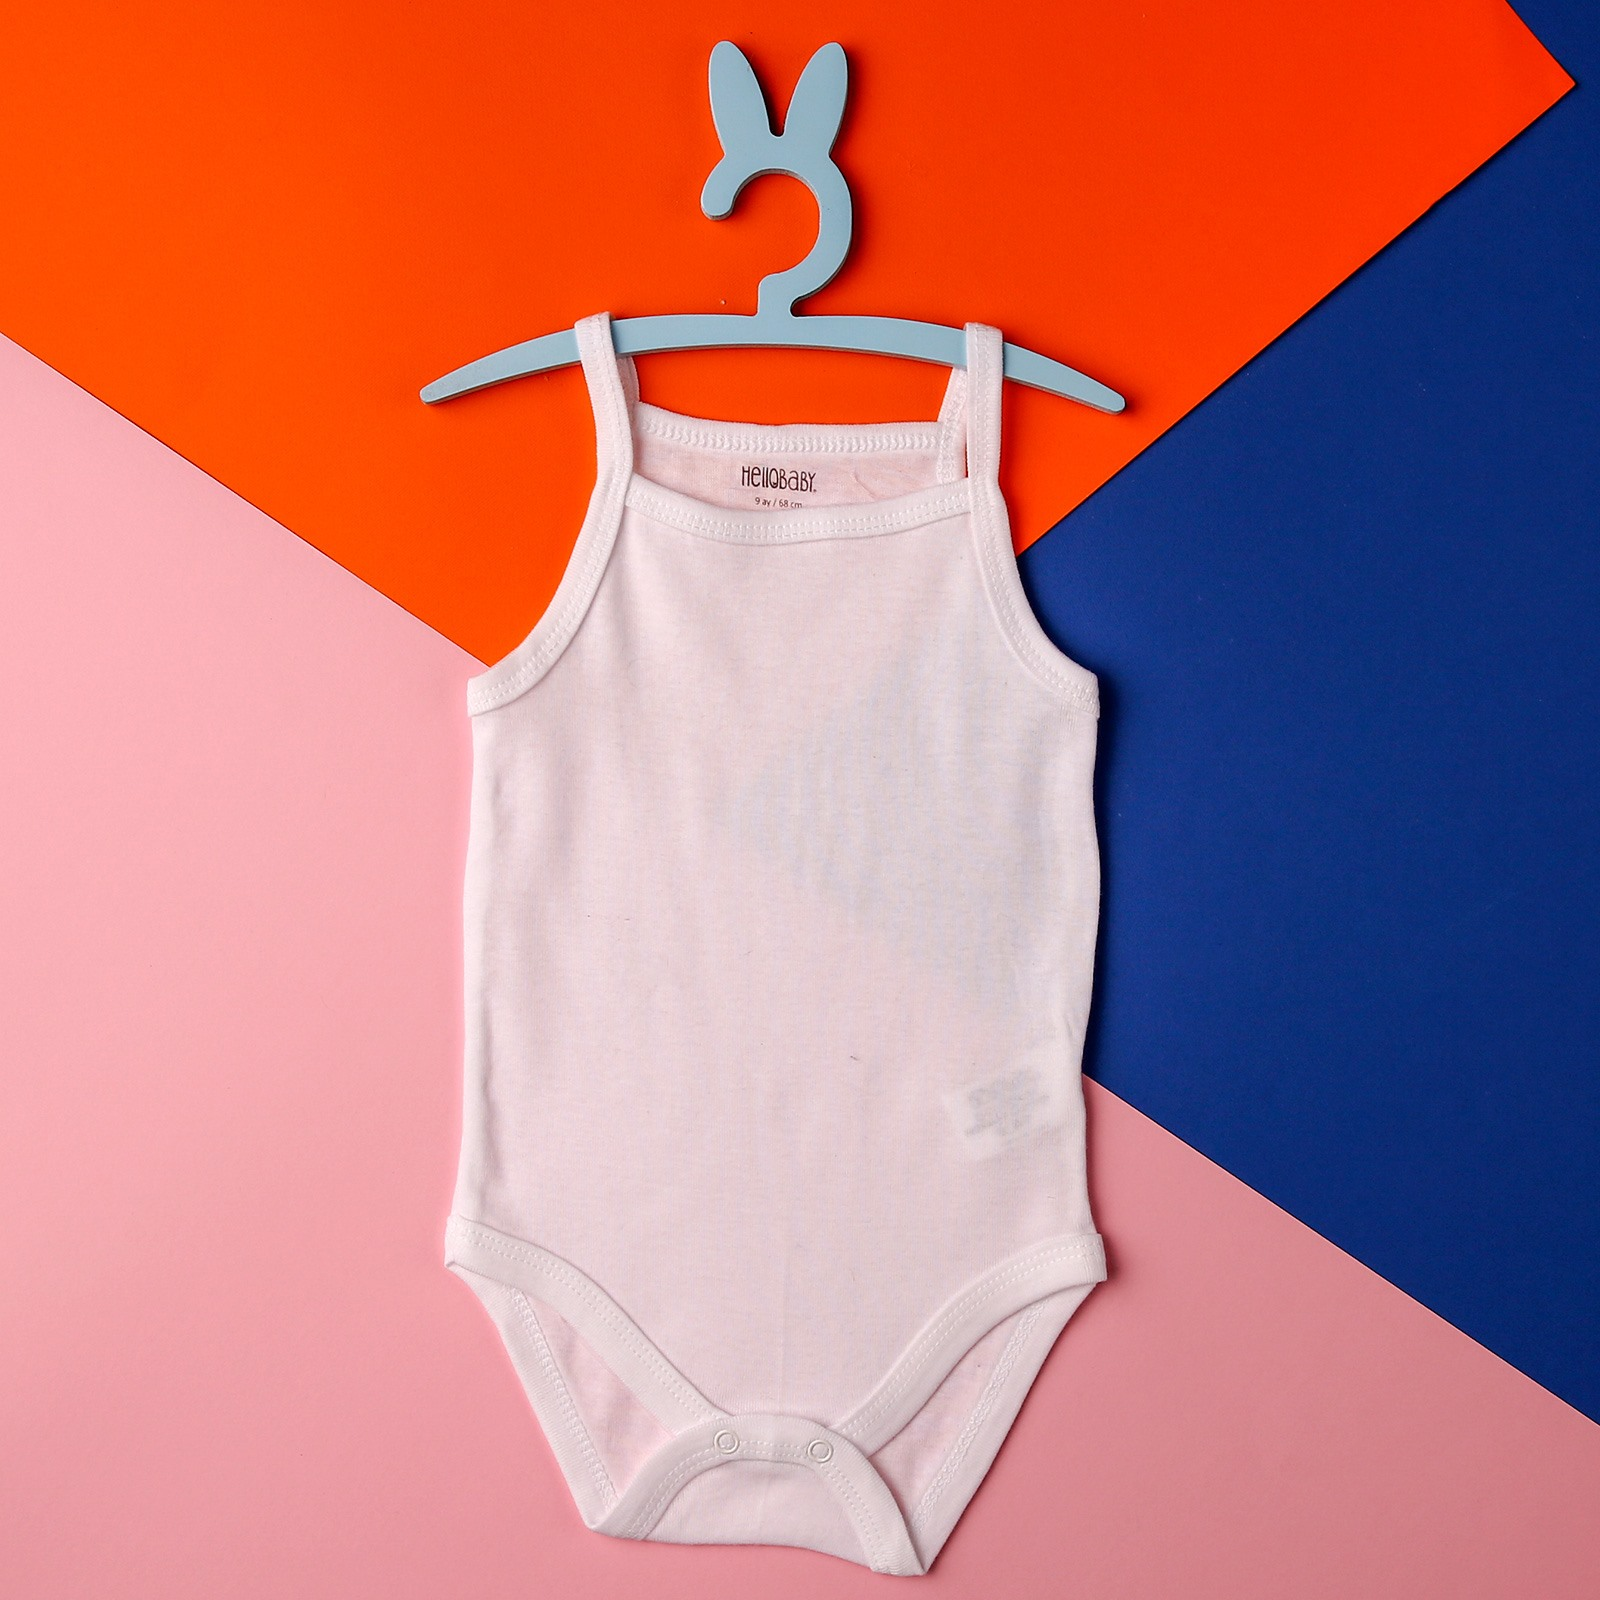 Ebebek HelloBaby White Cotton Bodysuit For Baby Girls And Baby Boys